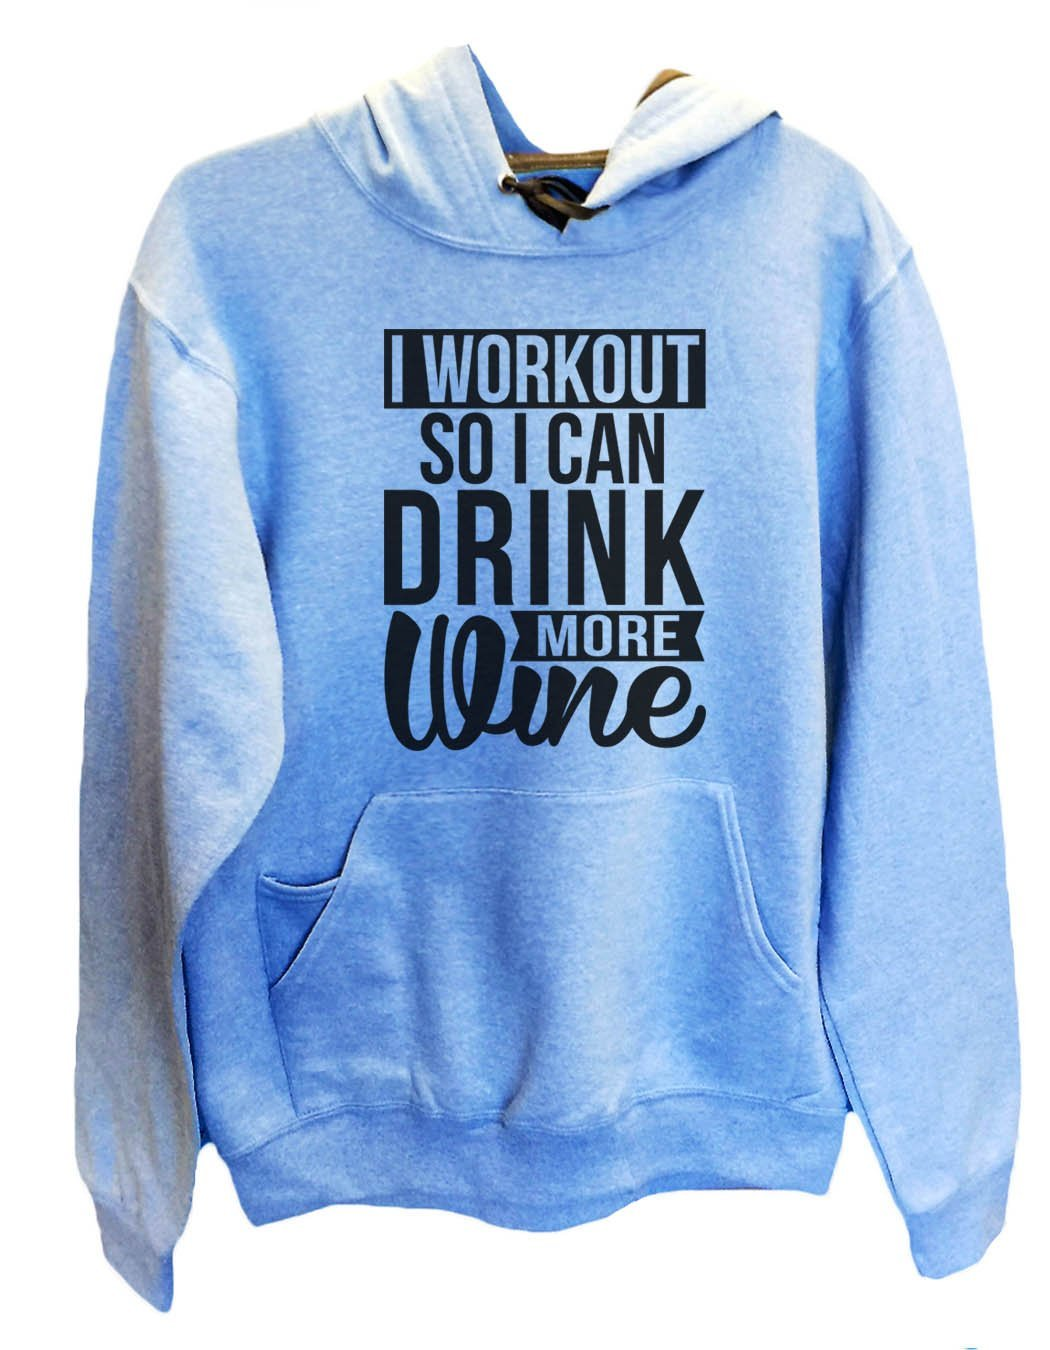 UNISEX HOODIE - I Workout So I Can Drink More Wine - FUNNY MENS AND WOMENS HOODED SWEATSHIRTS - 2133 Funny Shirt